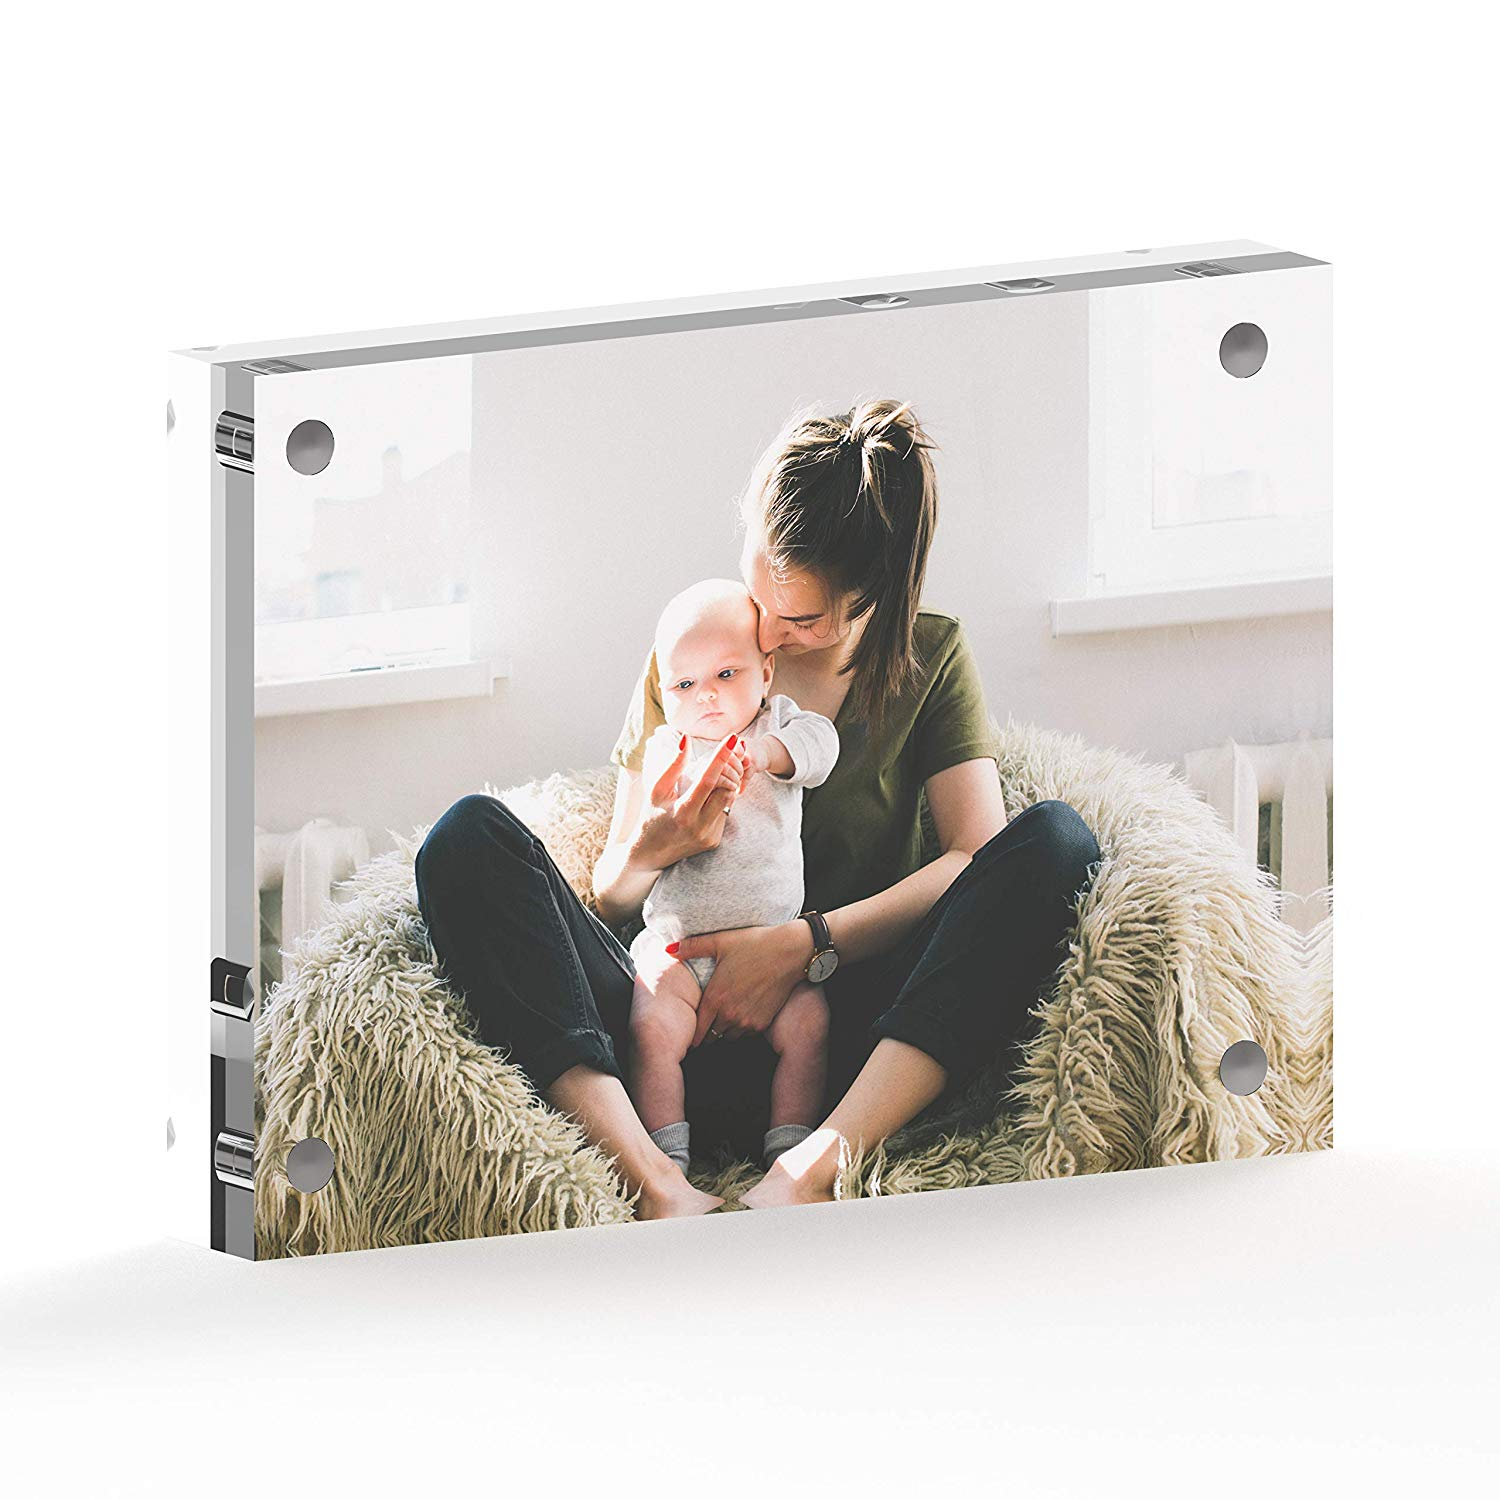 Mammoth AAA Grade Acrylic Picture Frame, Contemporary Double Thick (24mm) Design, Double Sided Acrylic Photo Frames Frameless Desktop Display with Gift Box Package (5x7-1 Pack)